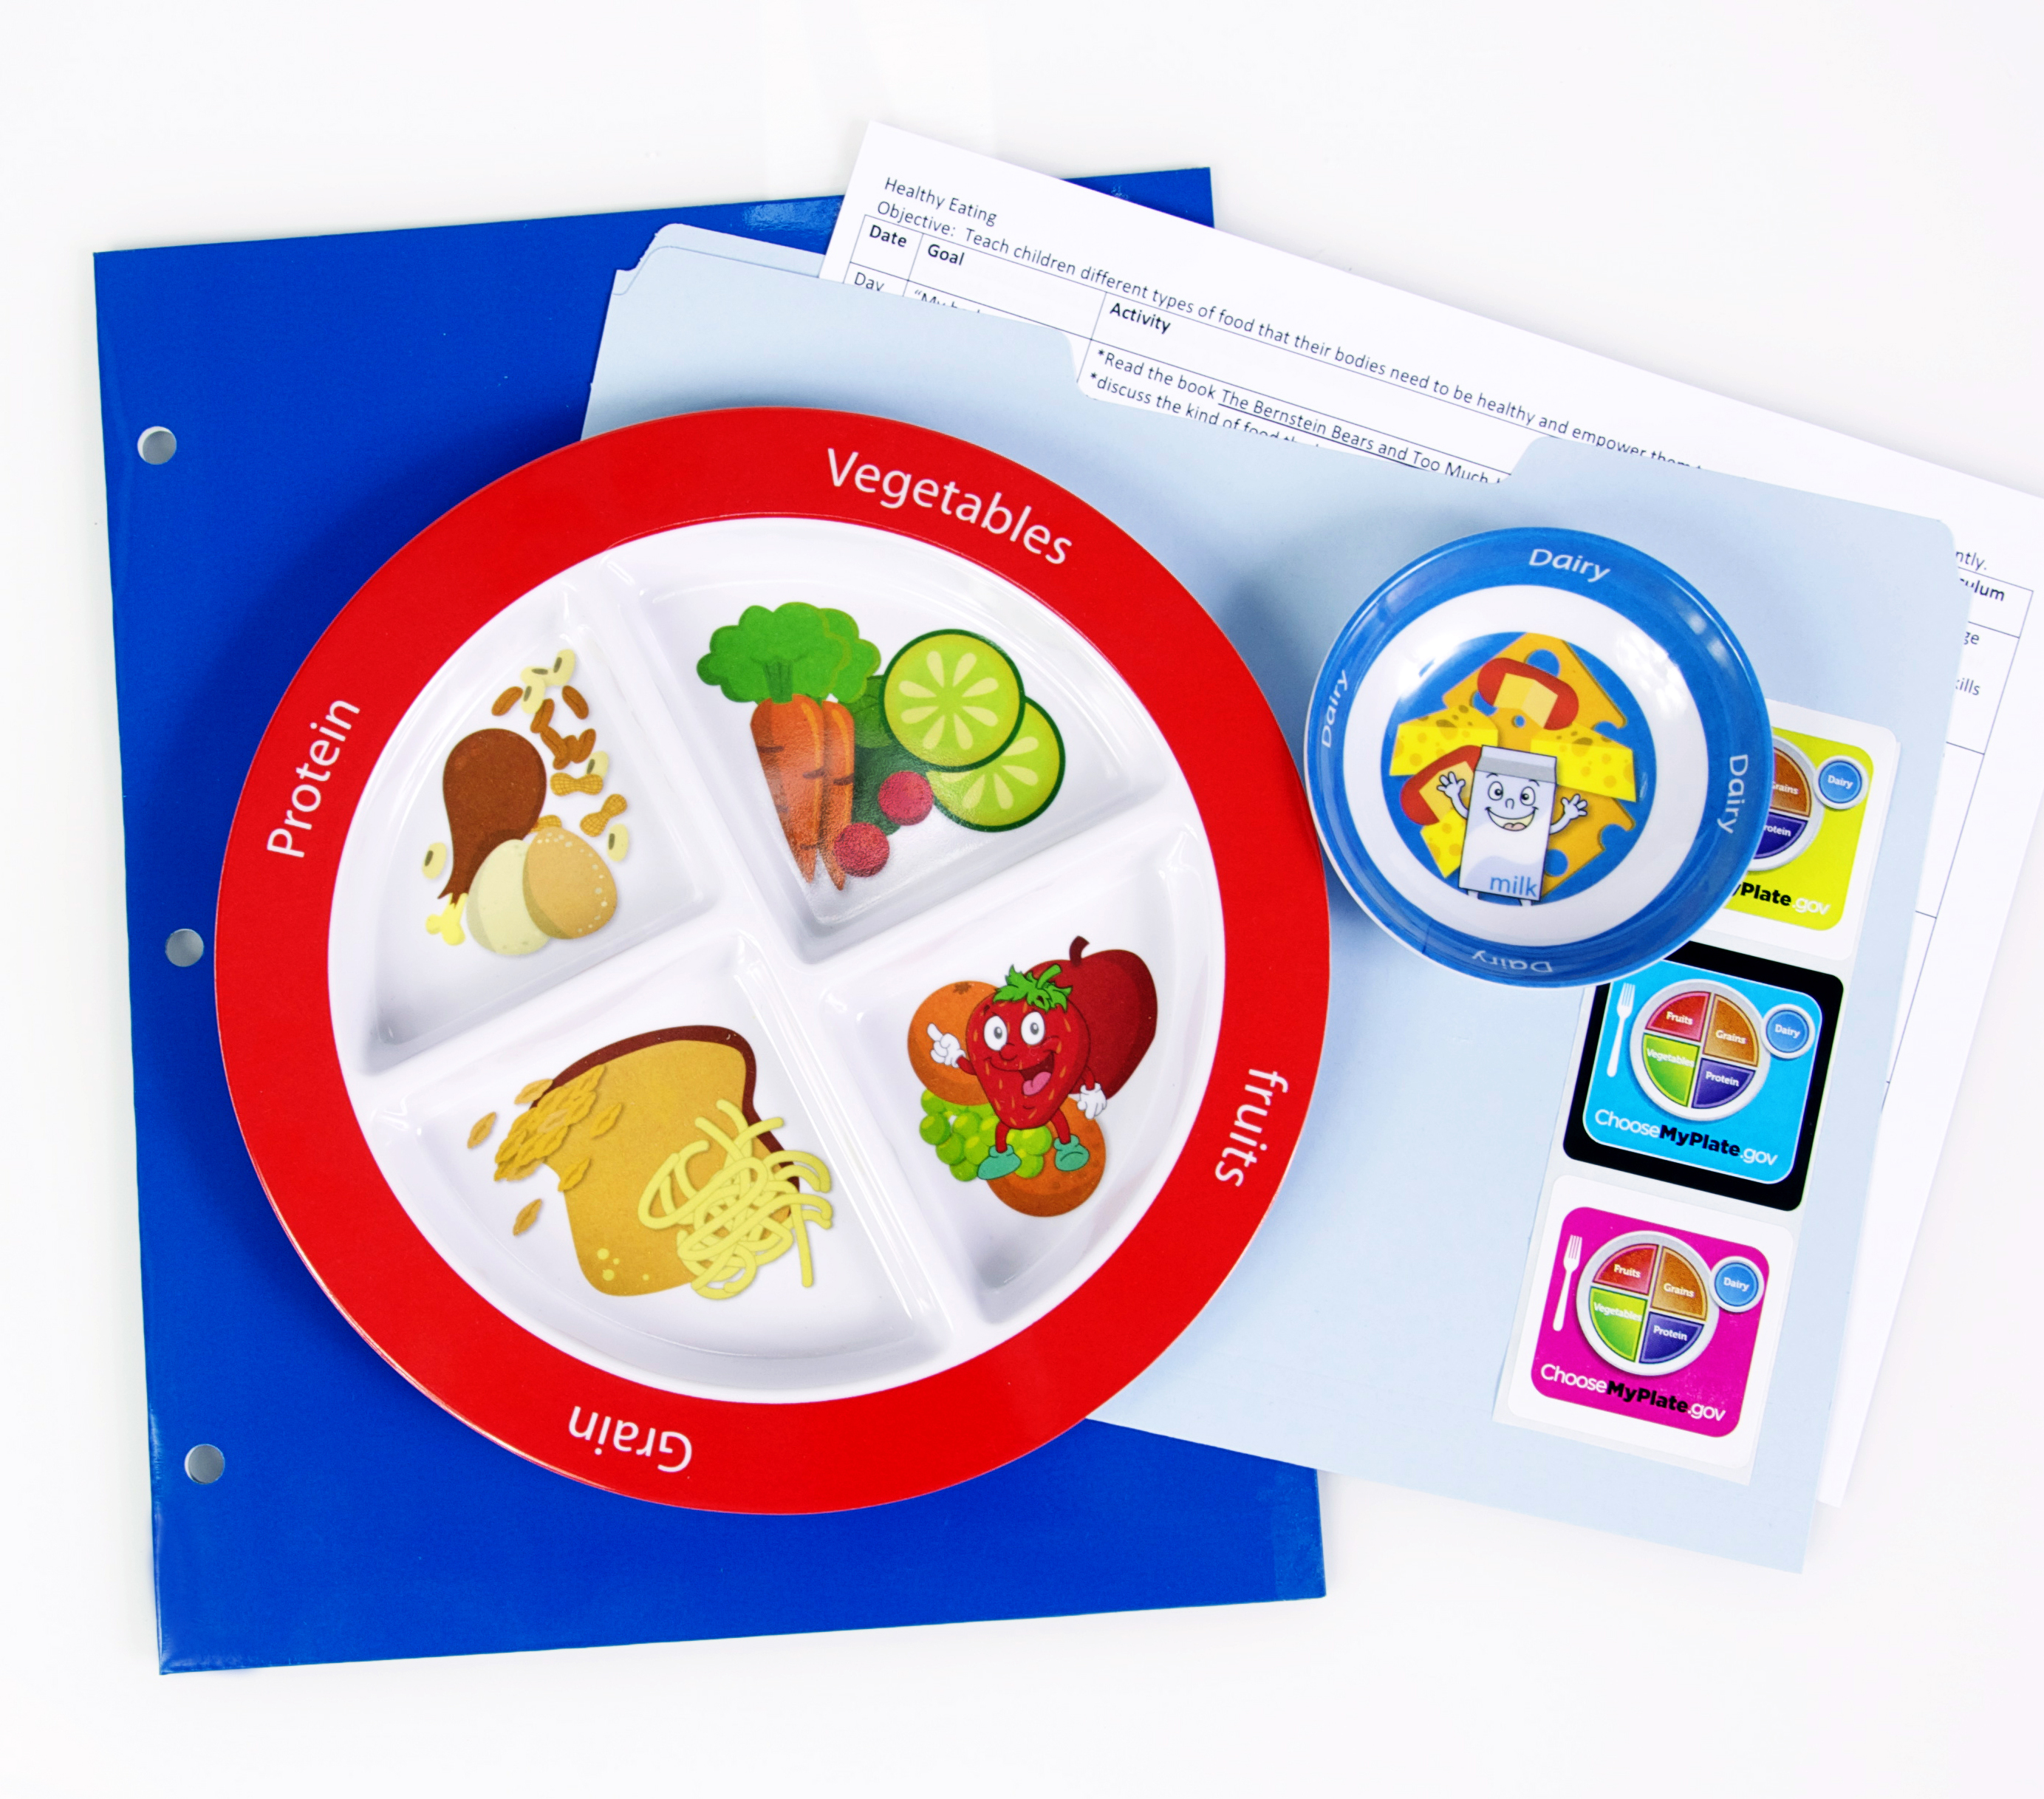 Nutrition Lesson Plans and Tools For Teaching | Healthy Ideas for Kids